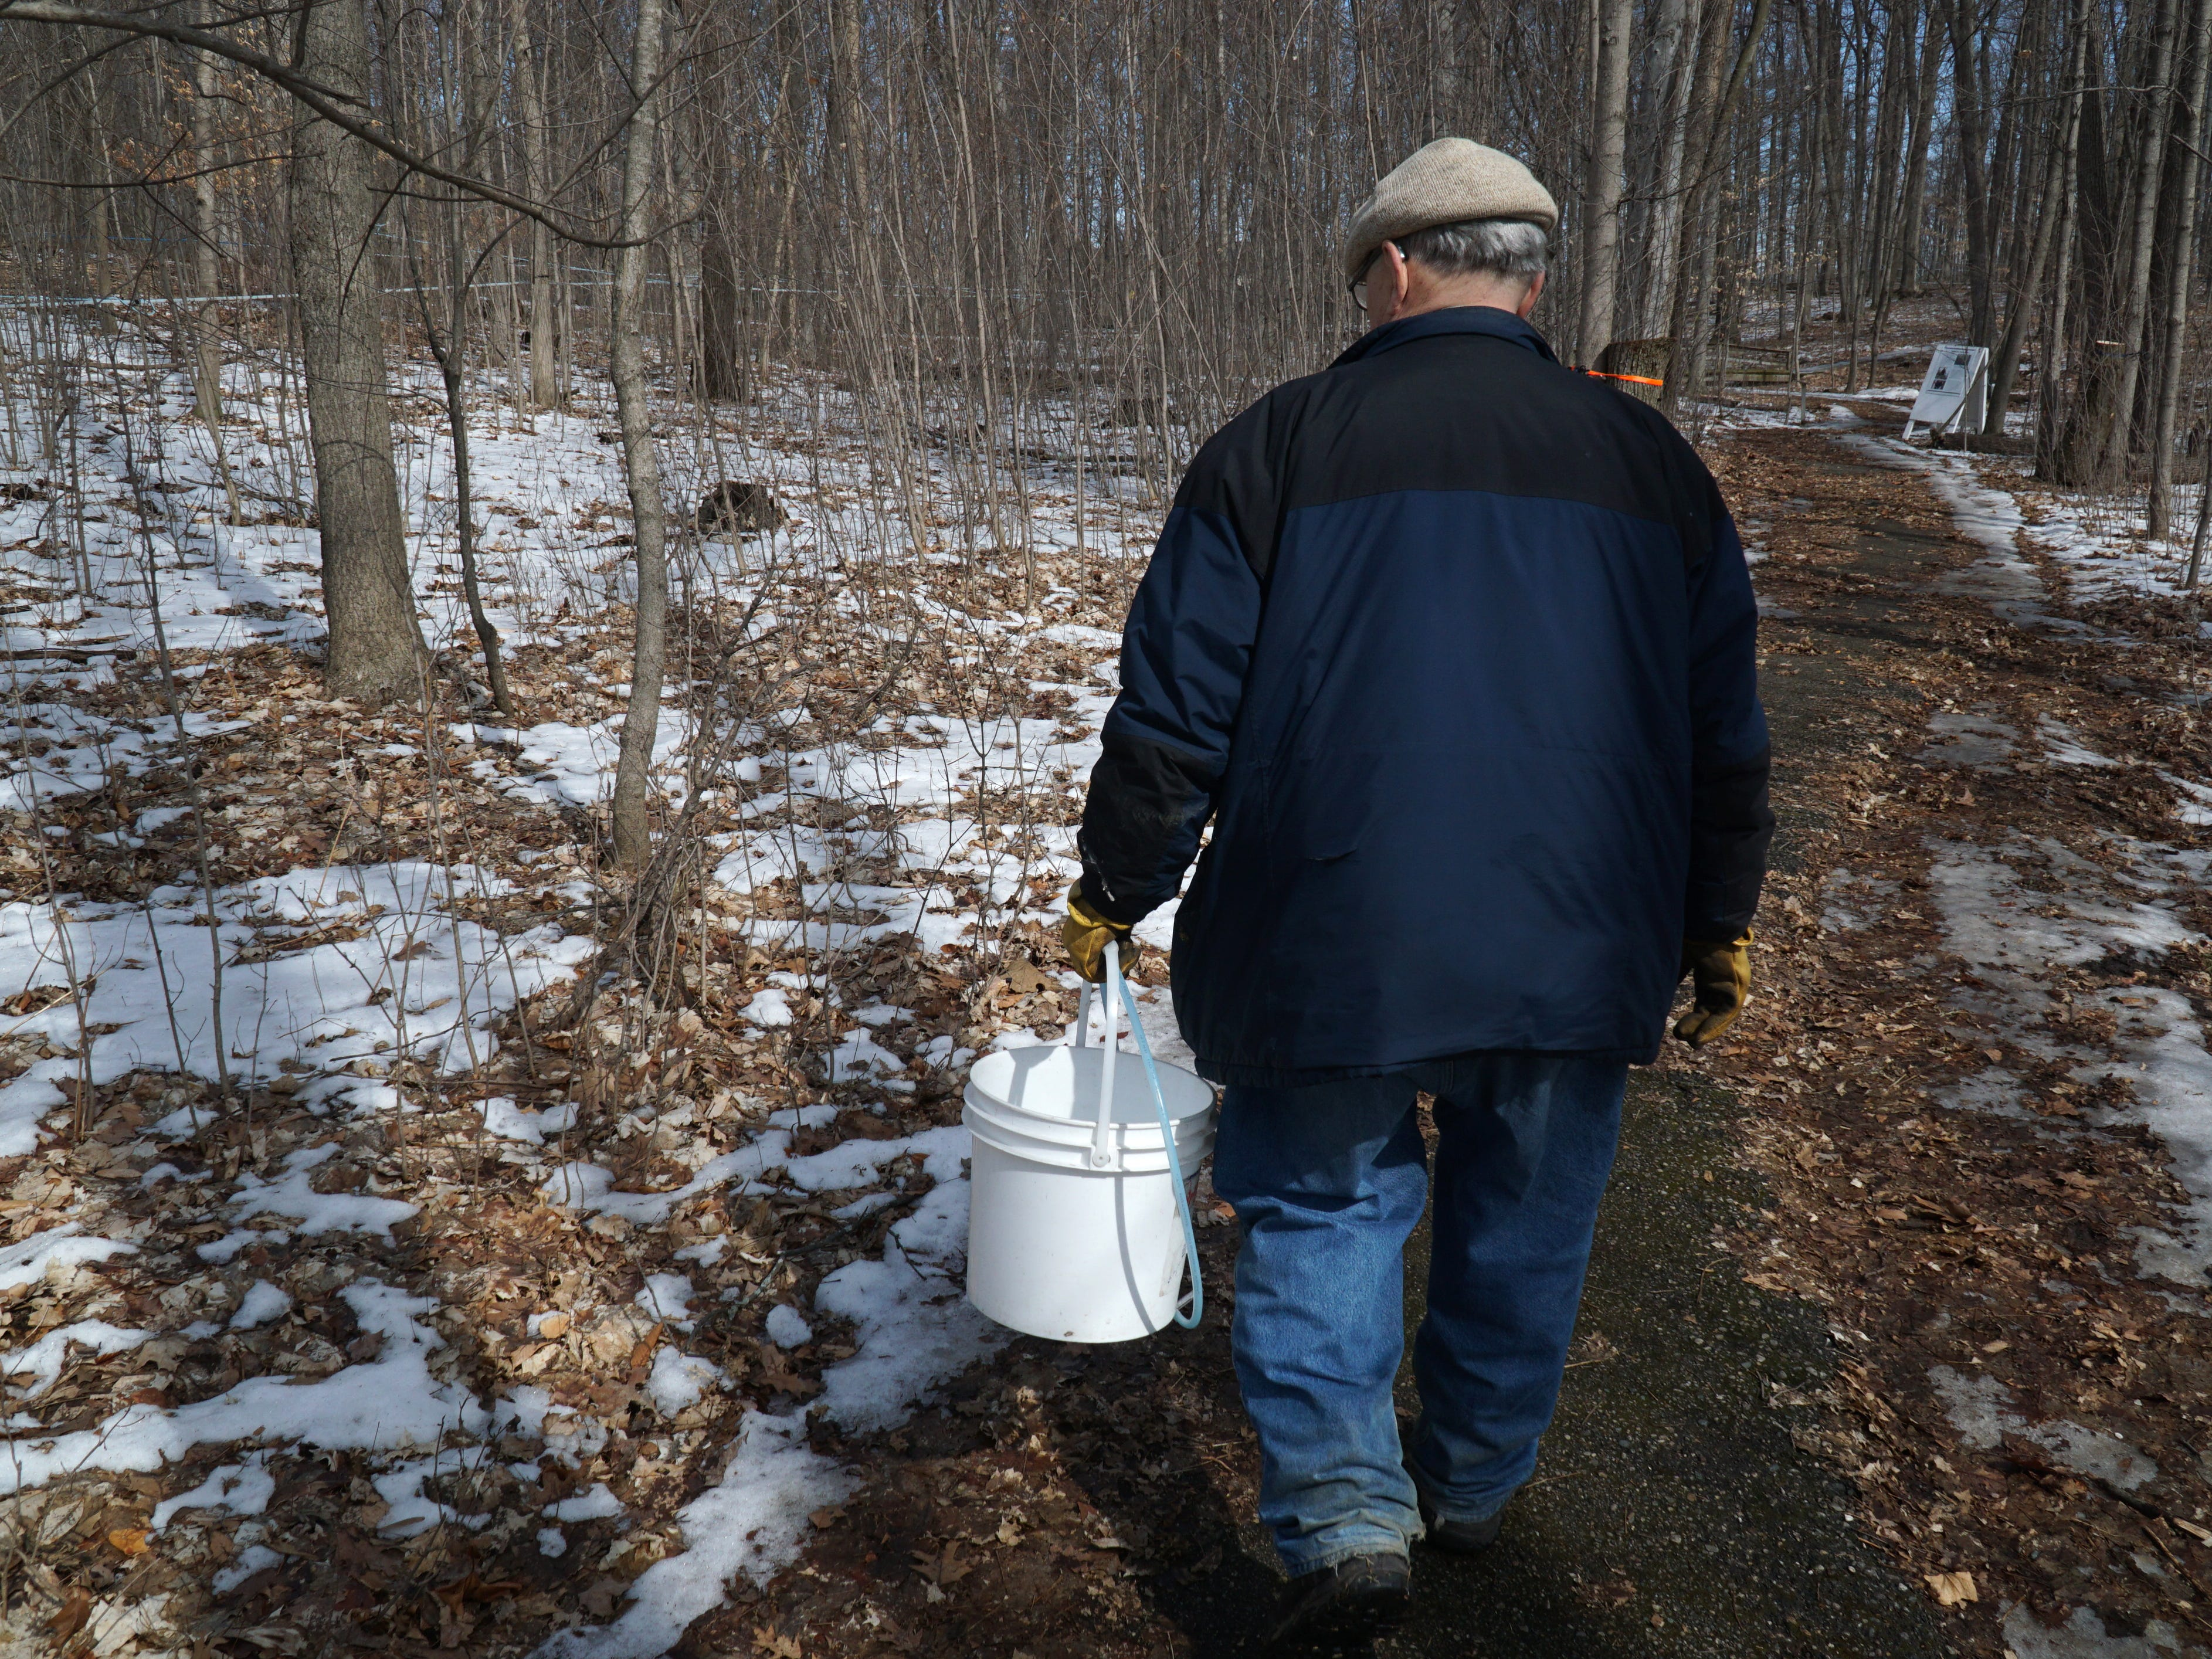 McInnis heads into Tollgate's sugar bush to gather some sap from its trees.